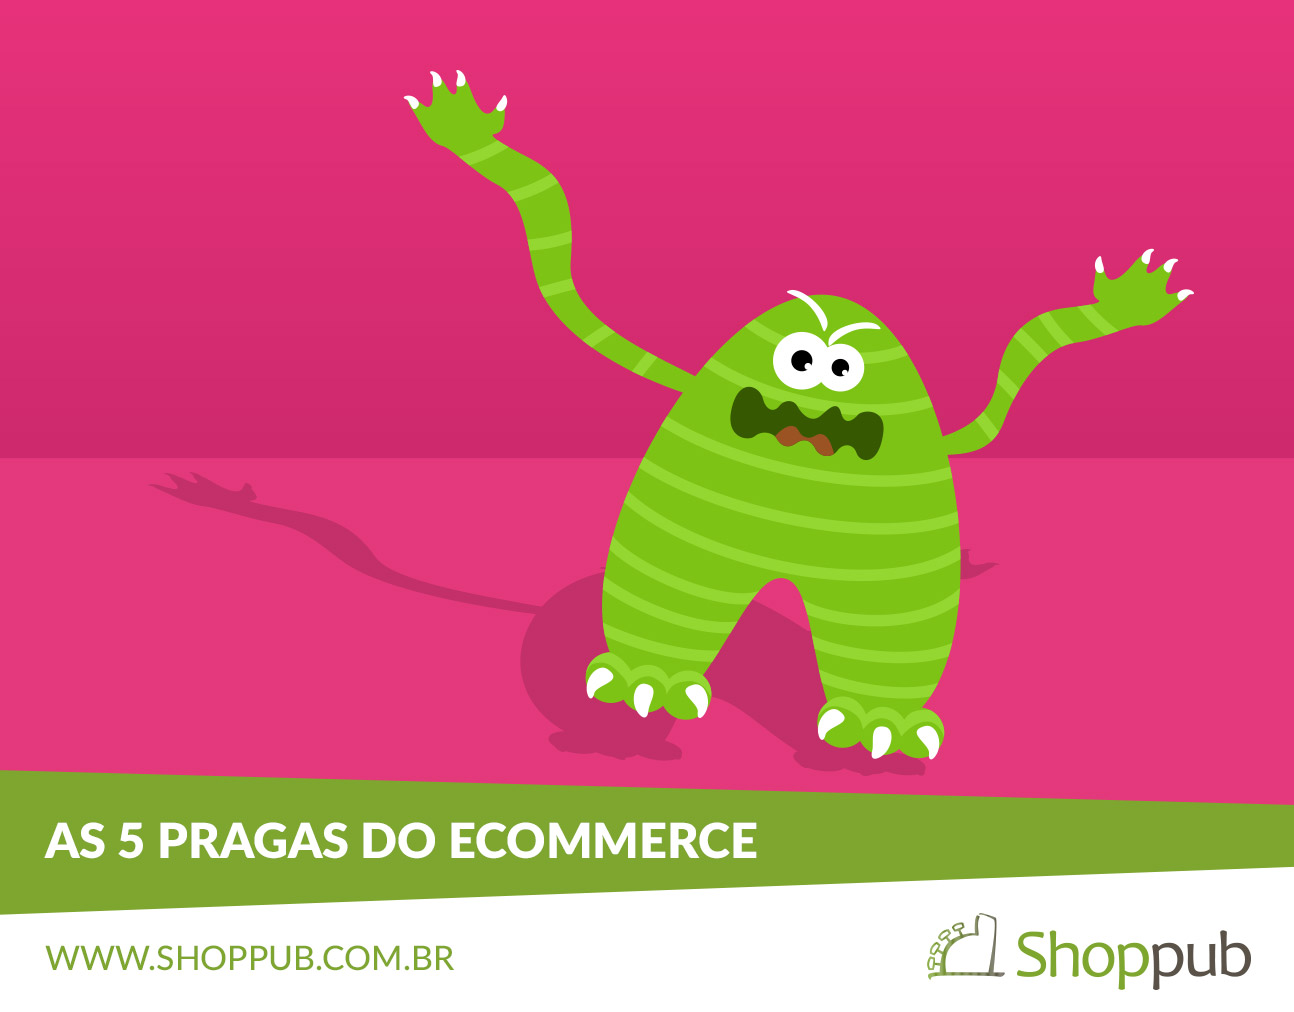 As 5 pragas do e-commerce